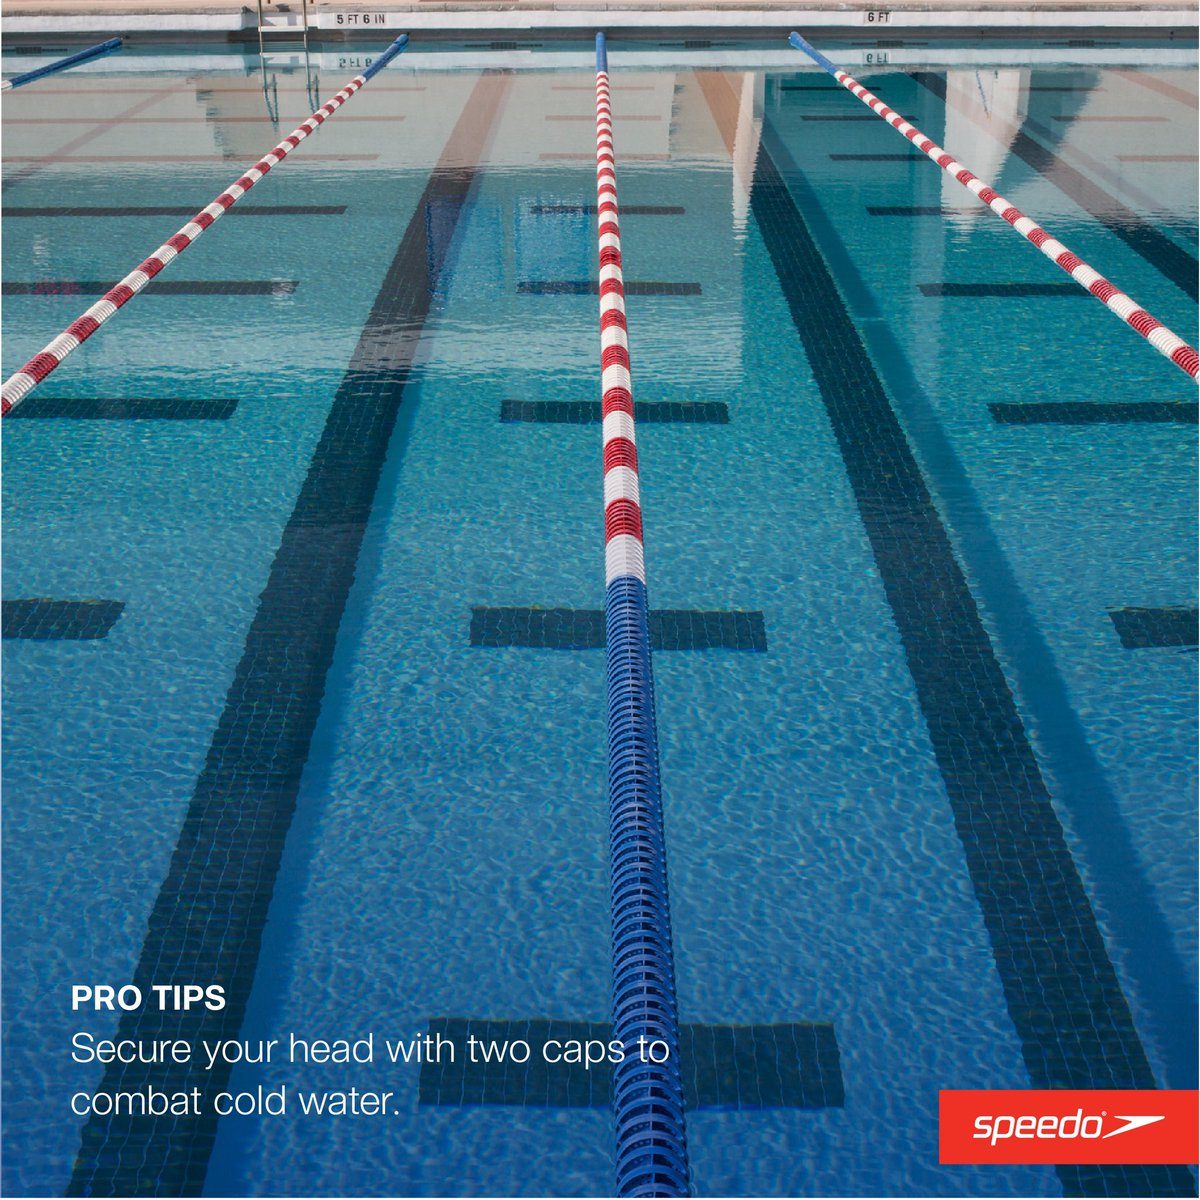 A swim in chilly water can stand in your way of accomplishing your fitness goals. Ensure you are fit and ready to hit the pool with double the protection! #Speedo #SpeedoIndia #BornOfWater #ProTips #FitnessTips #Motivationalpic.twitter.com/uhIFhkHiZP